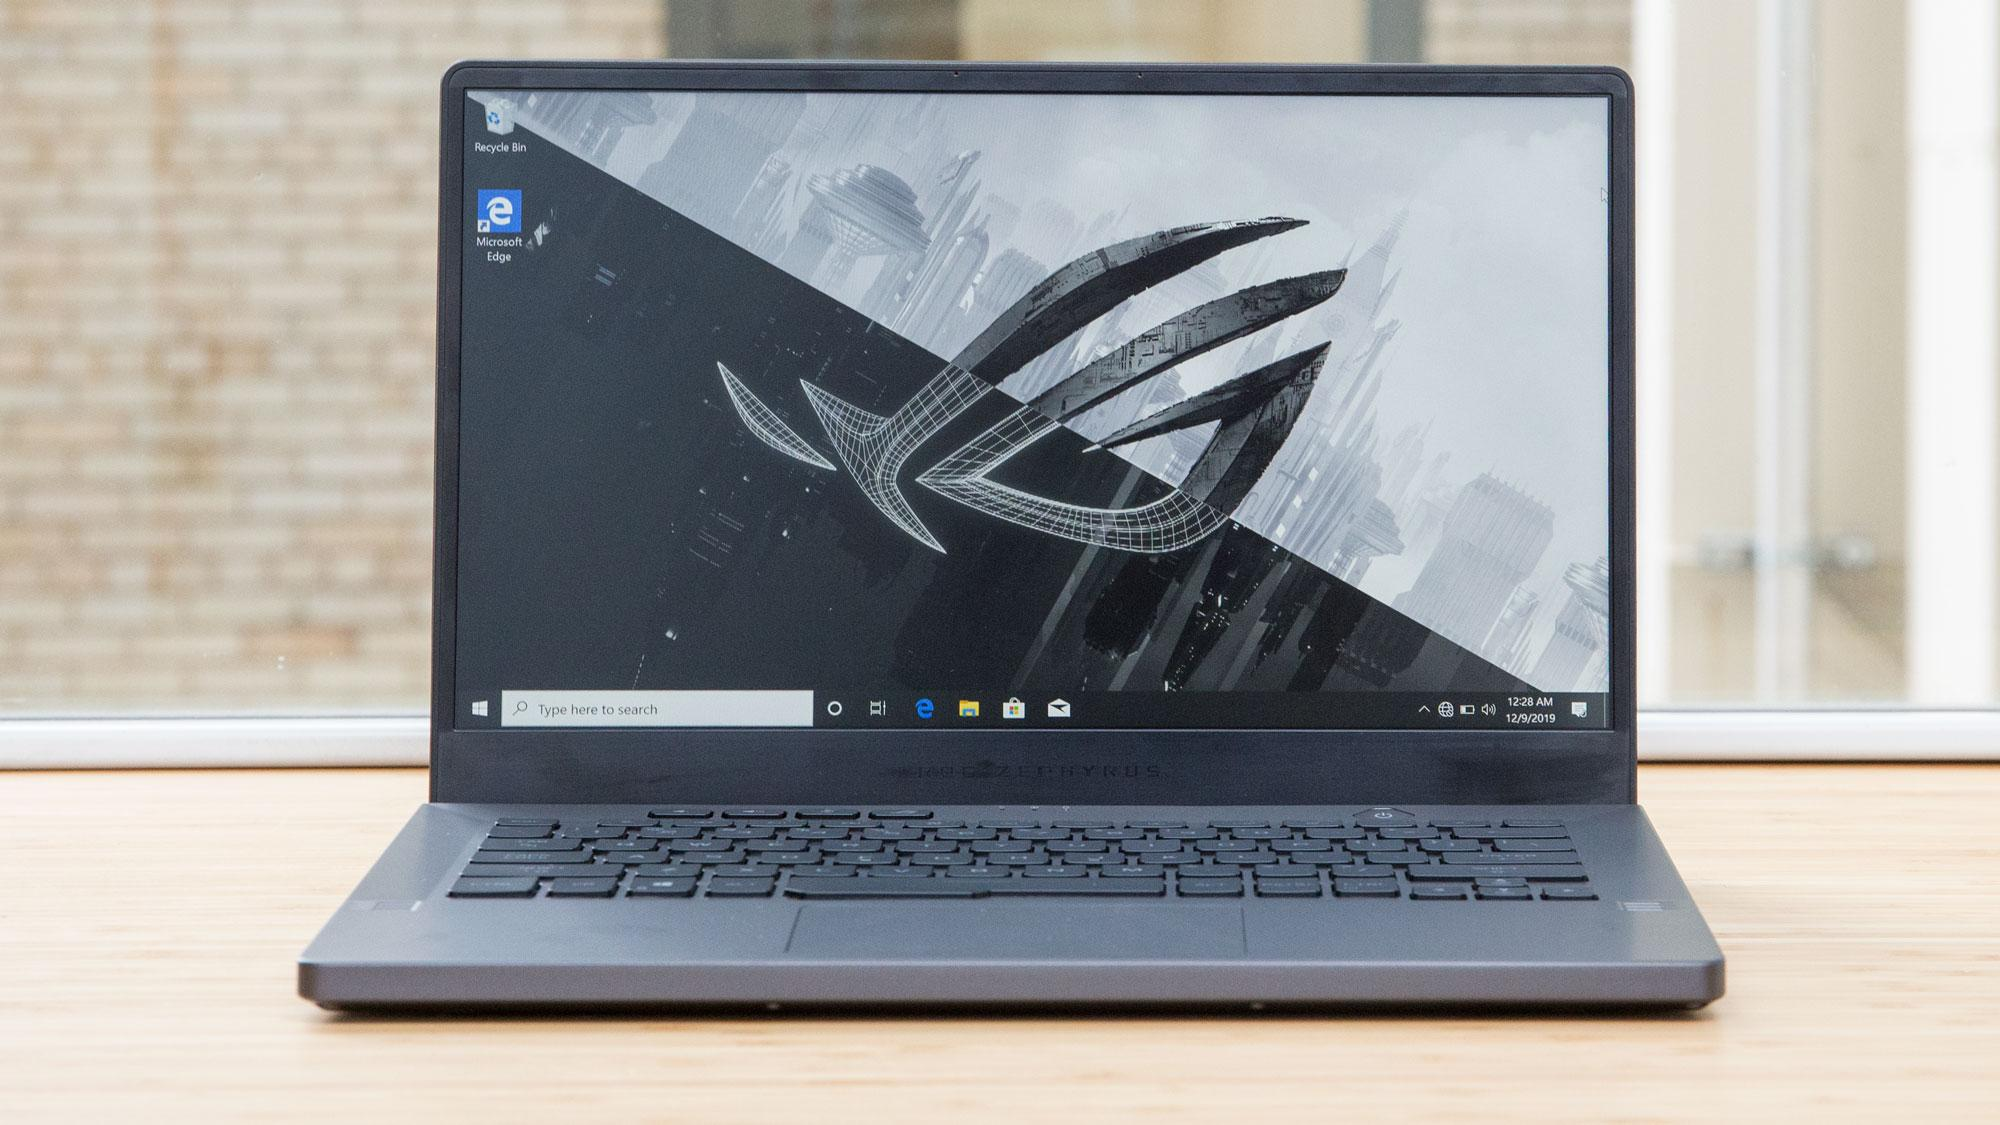 Getting a High-Spec Laptop at an Affordable Price